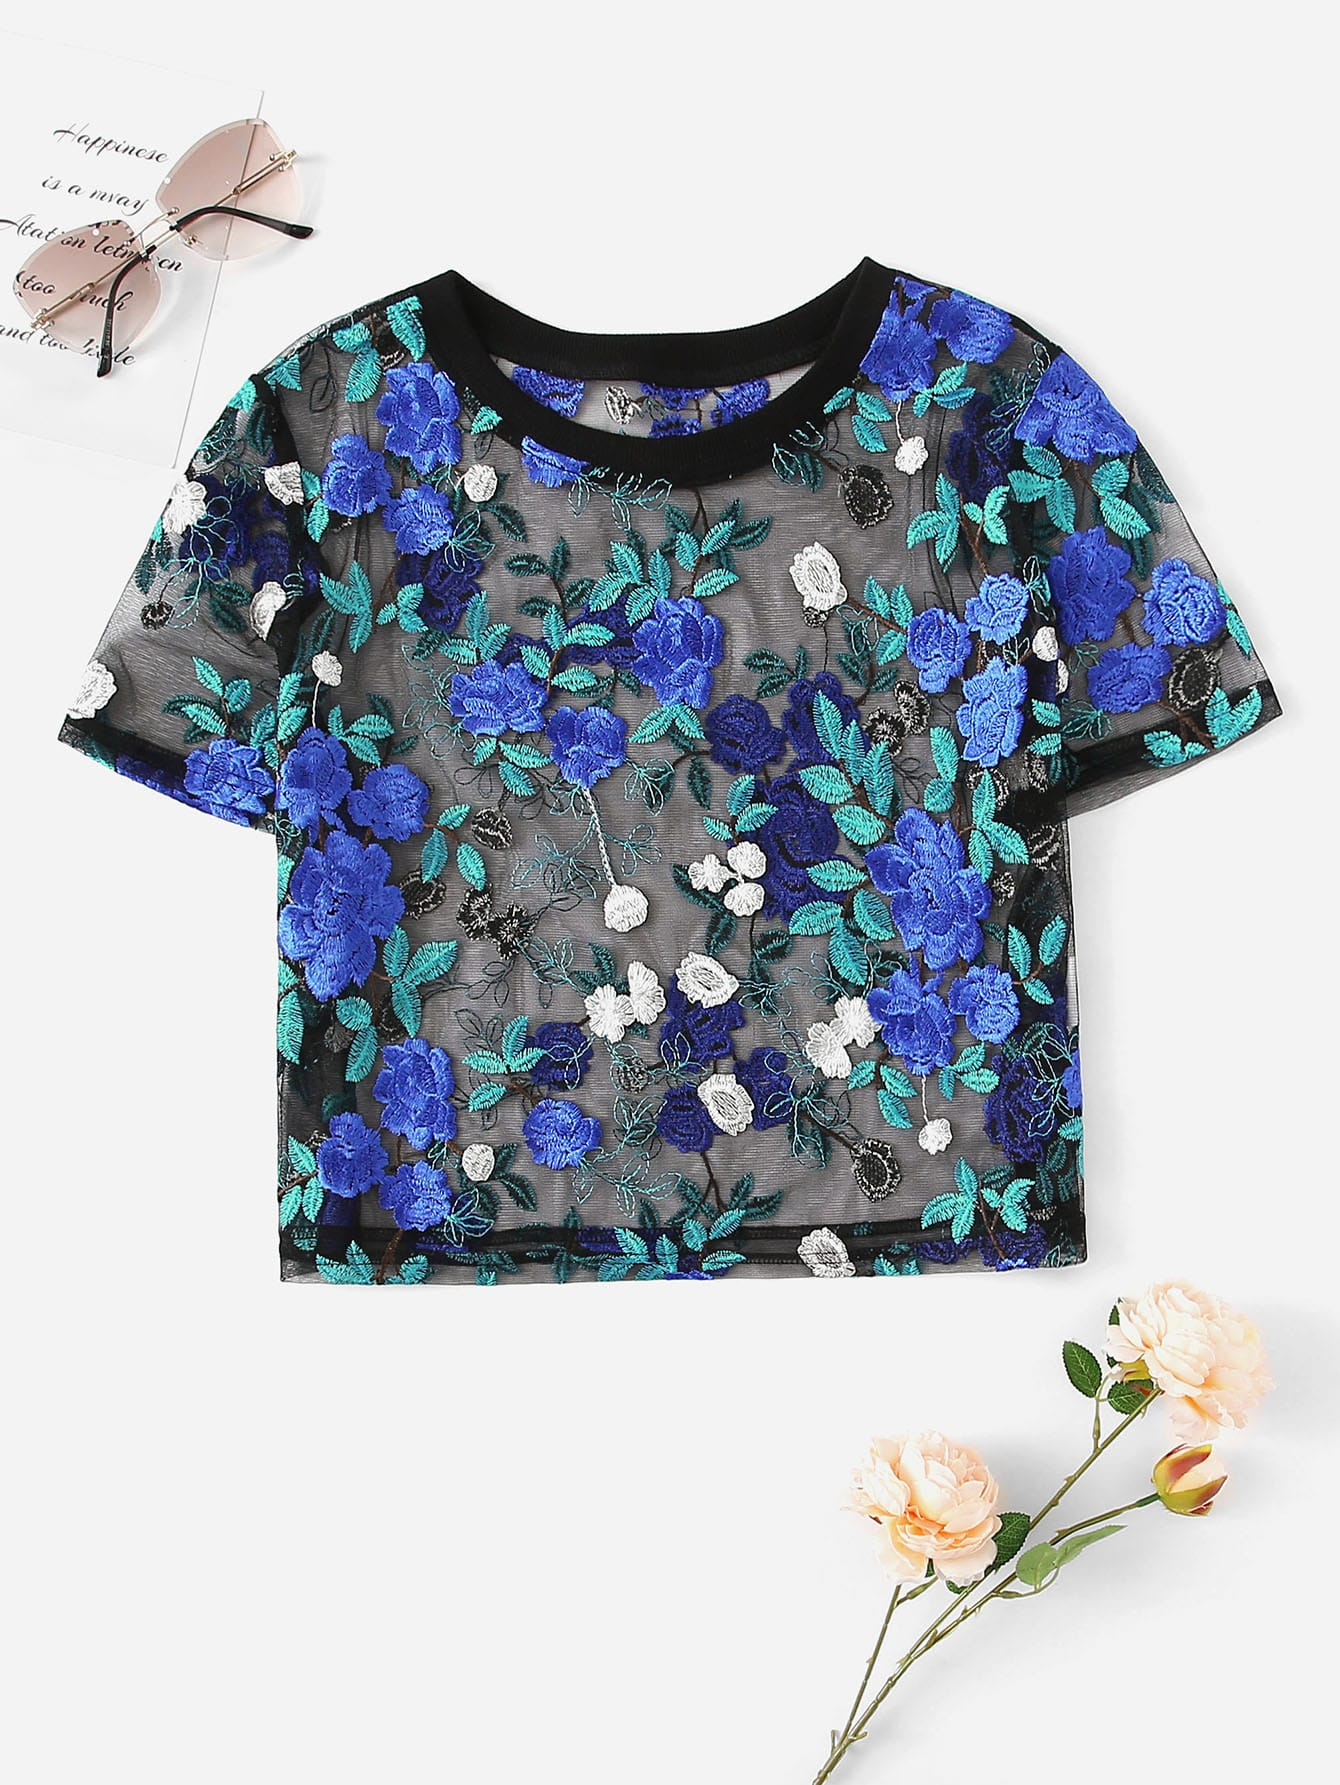 d5ebbef5614b3 Floral Embroidery Sheer Mesh Top